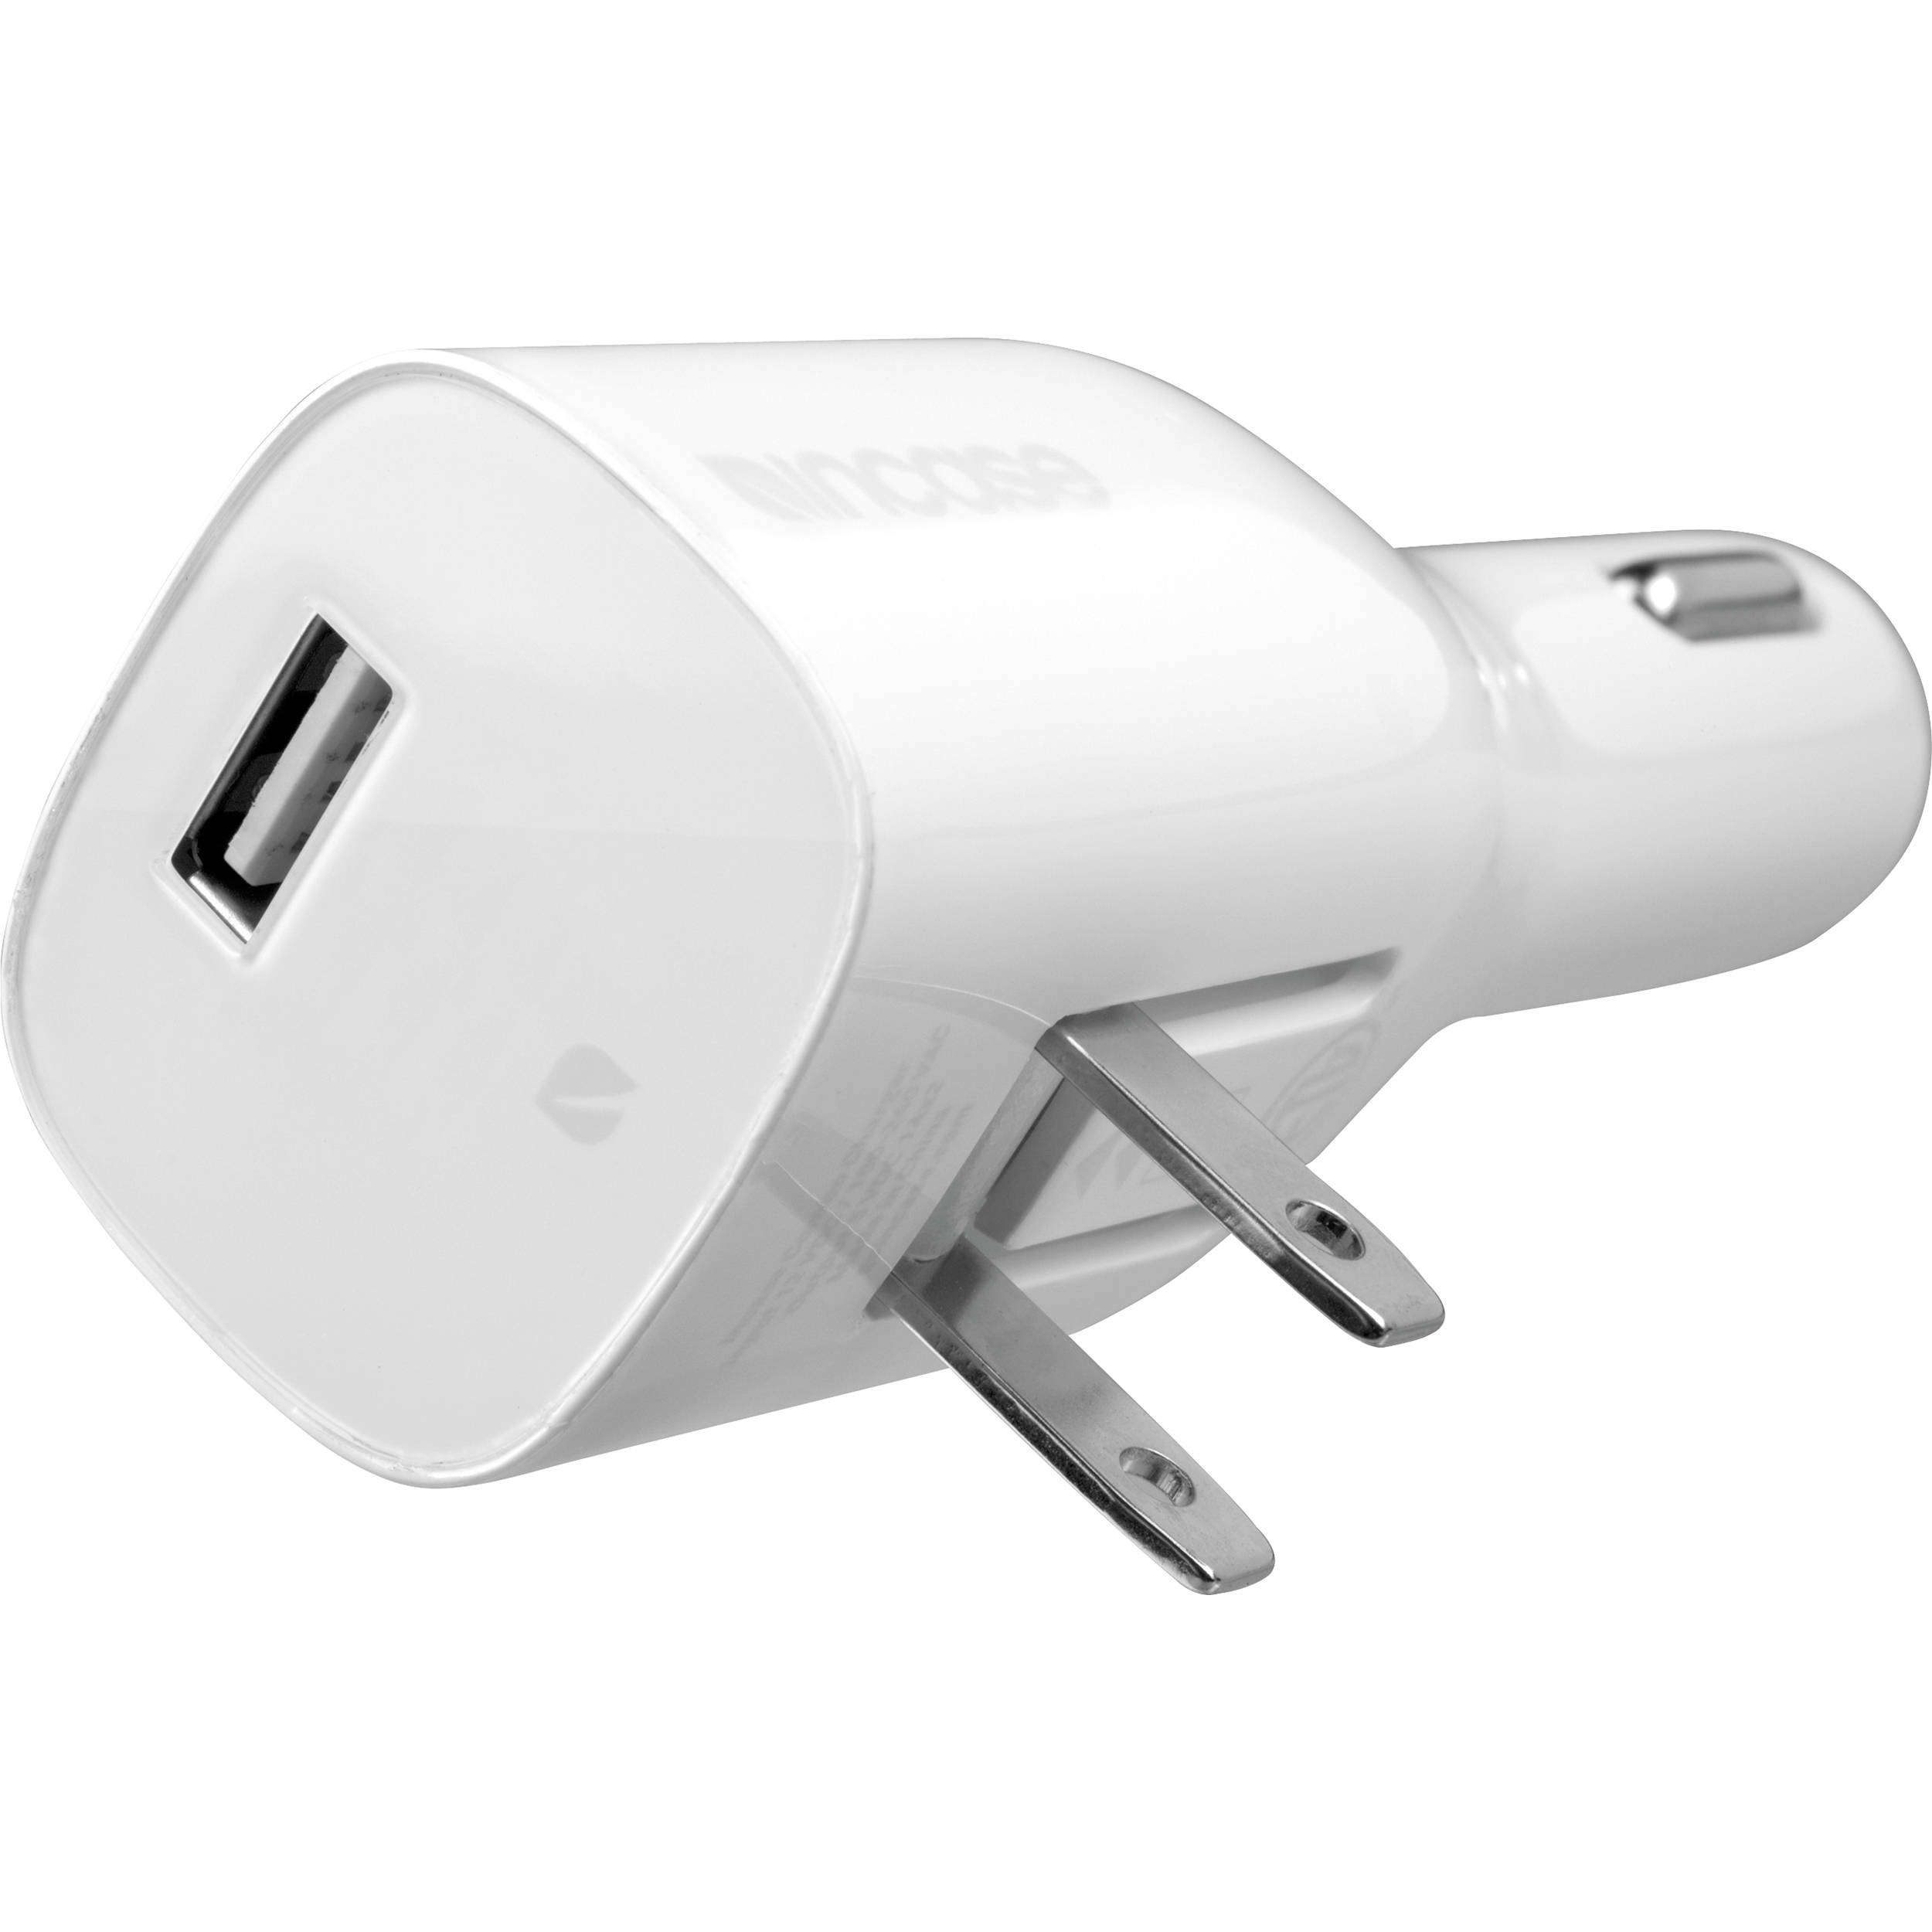 info for cdccd 4c945 Incase Designs Corp Combo Charger for iPod, iPhone and EC20036